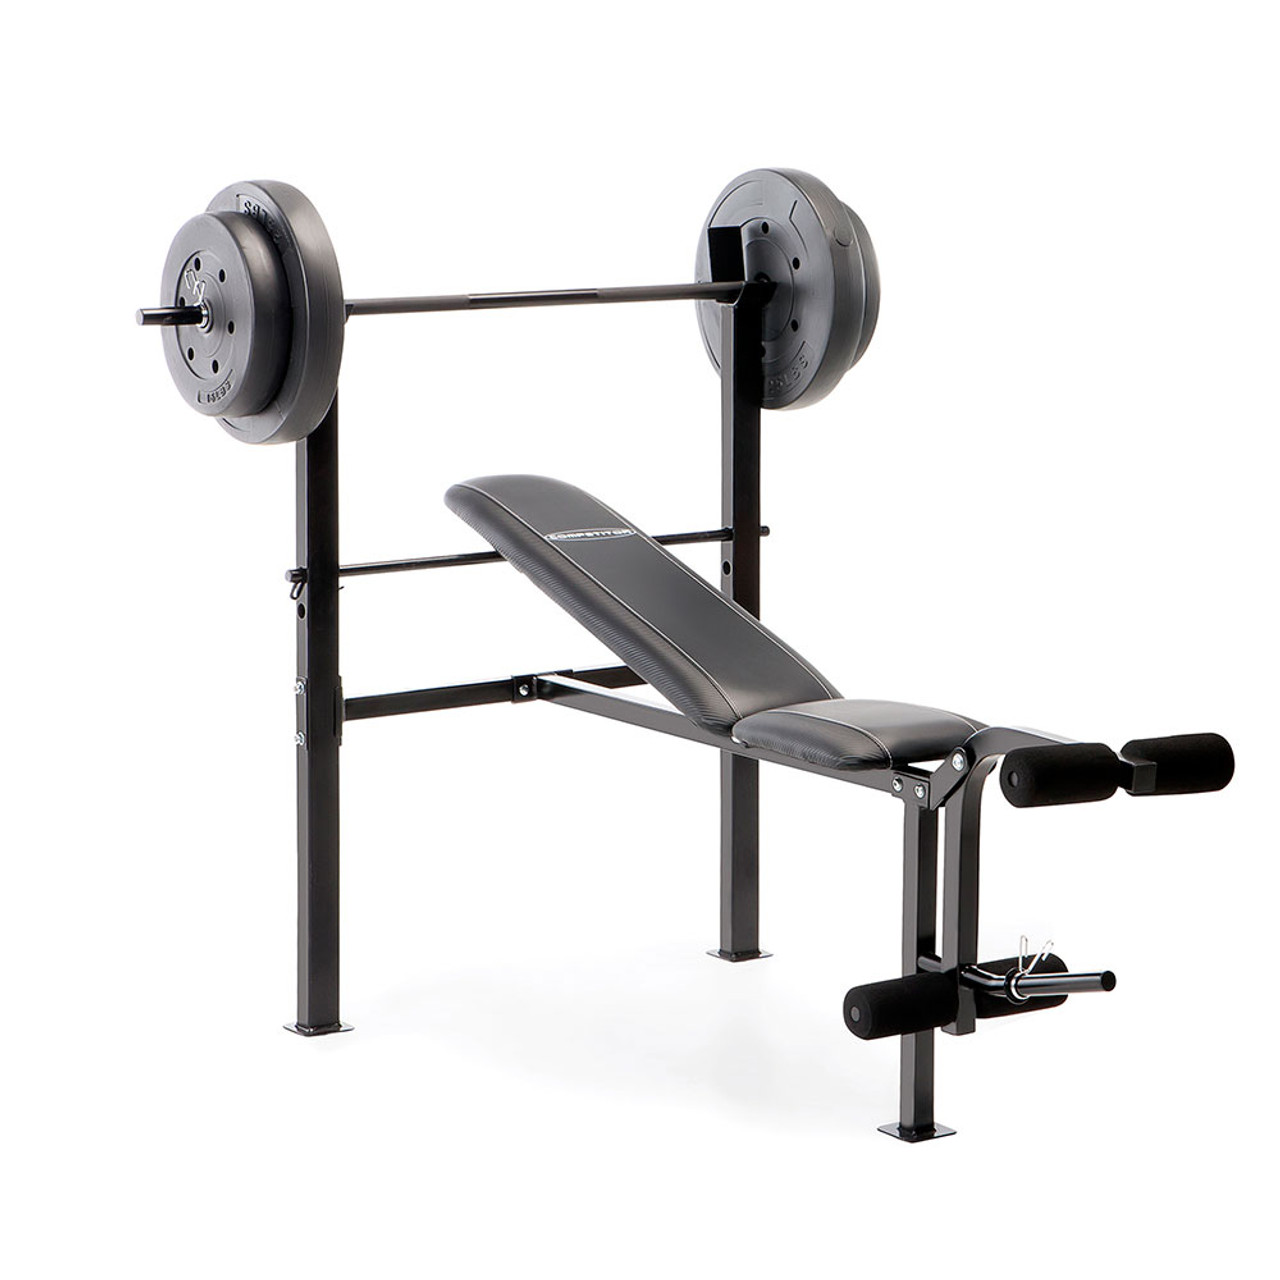 Weight Benches Bench Set For Sale Mesmerizing With Ebay: Competitor CB-20111 Quality Strength Products